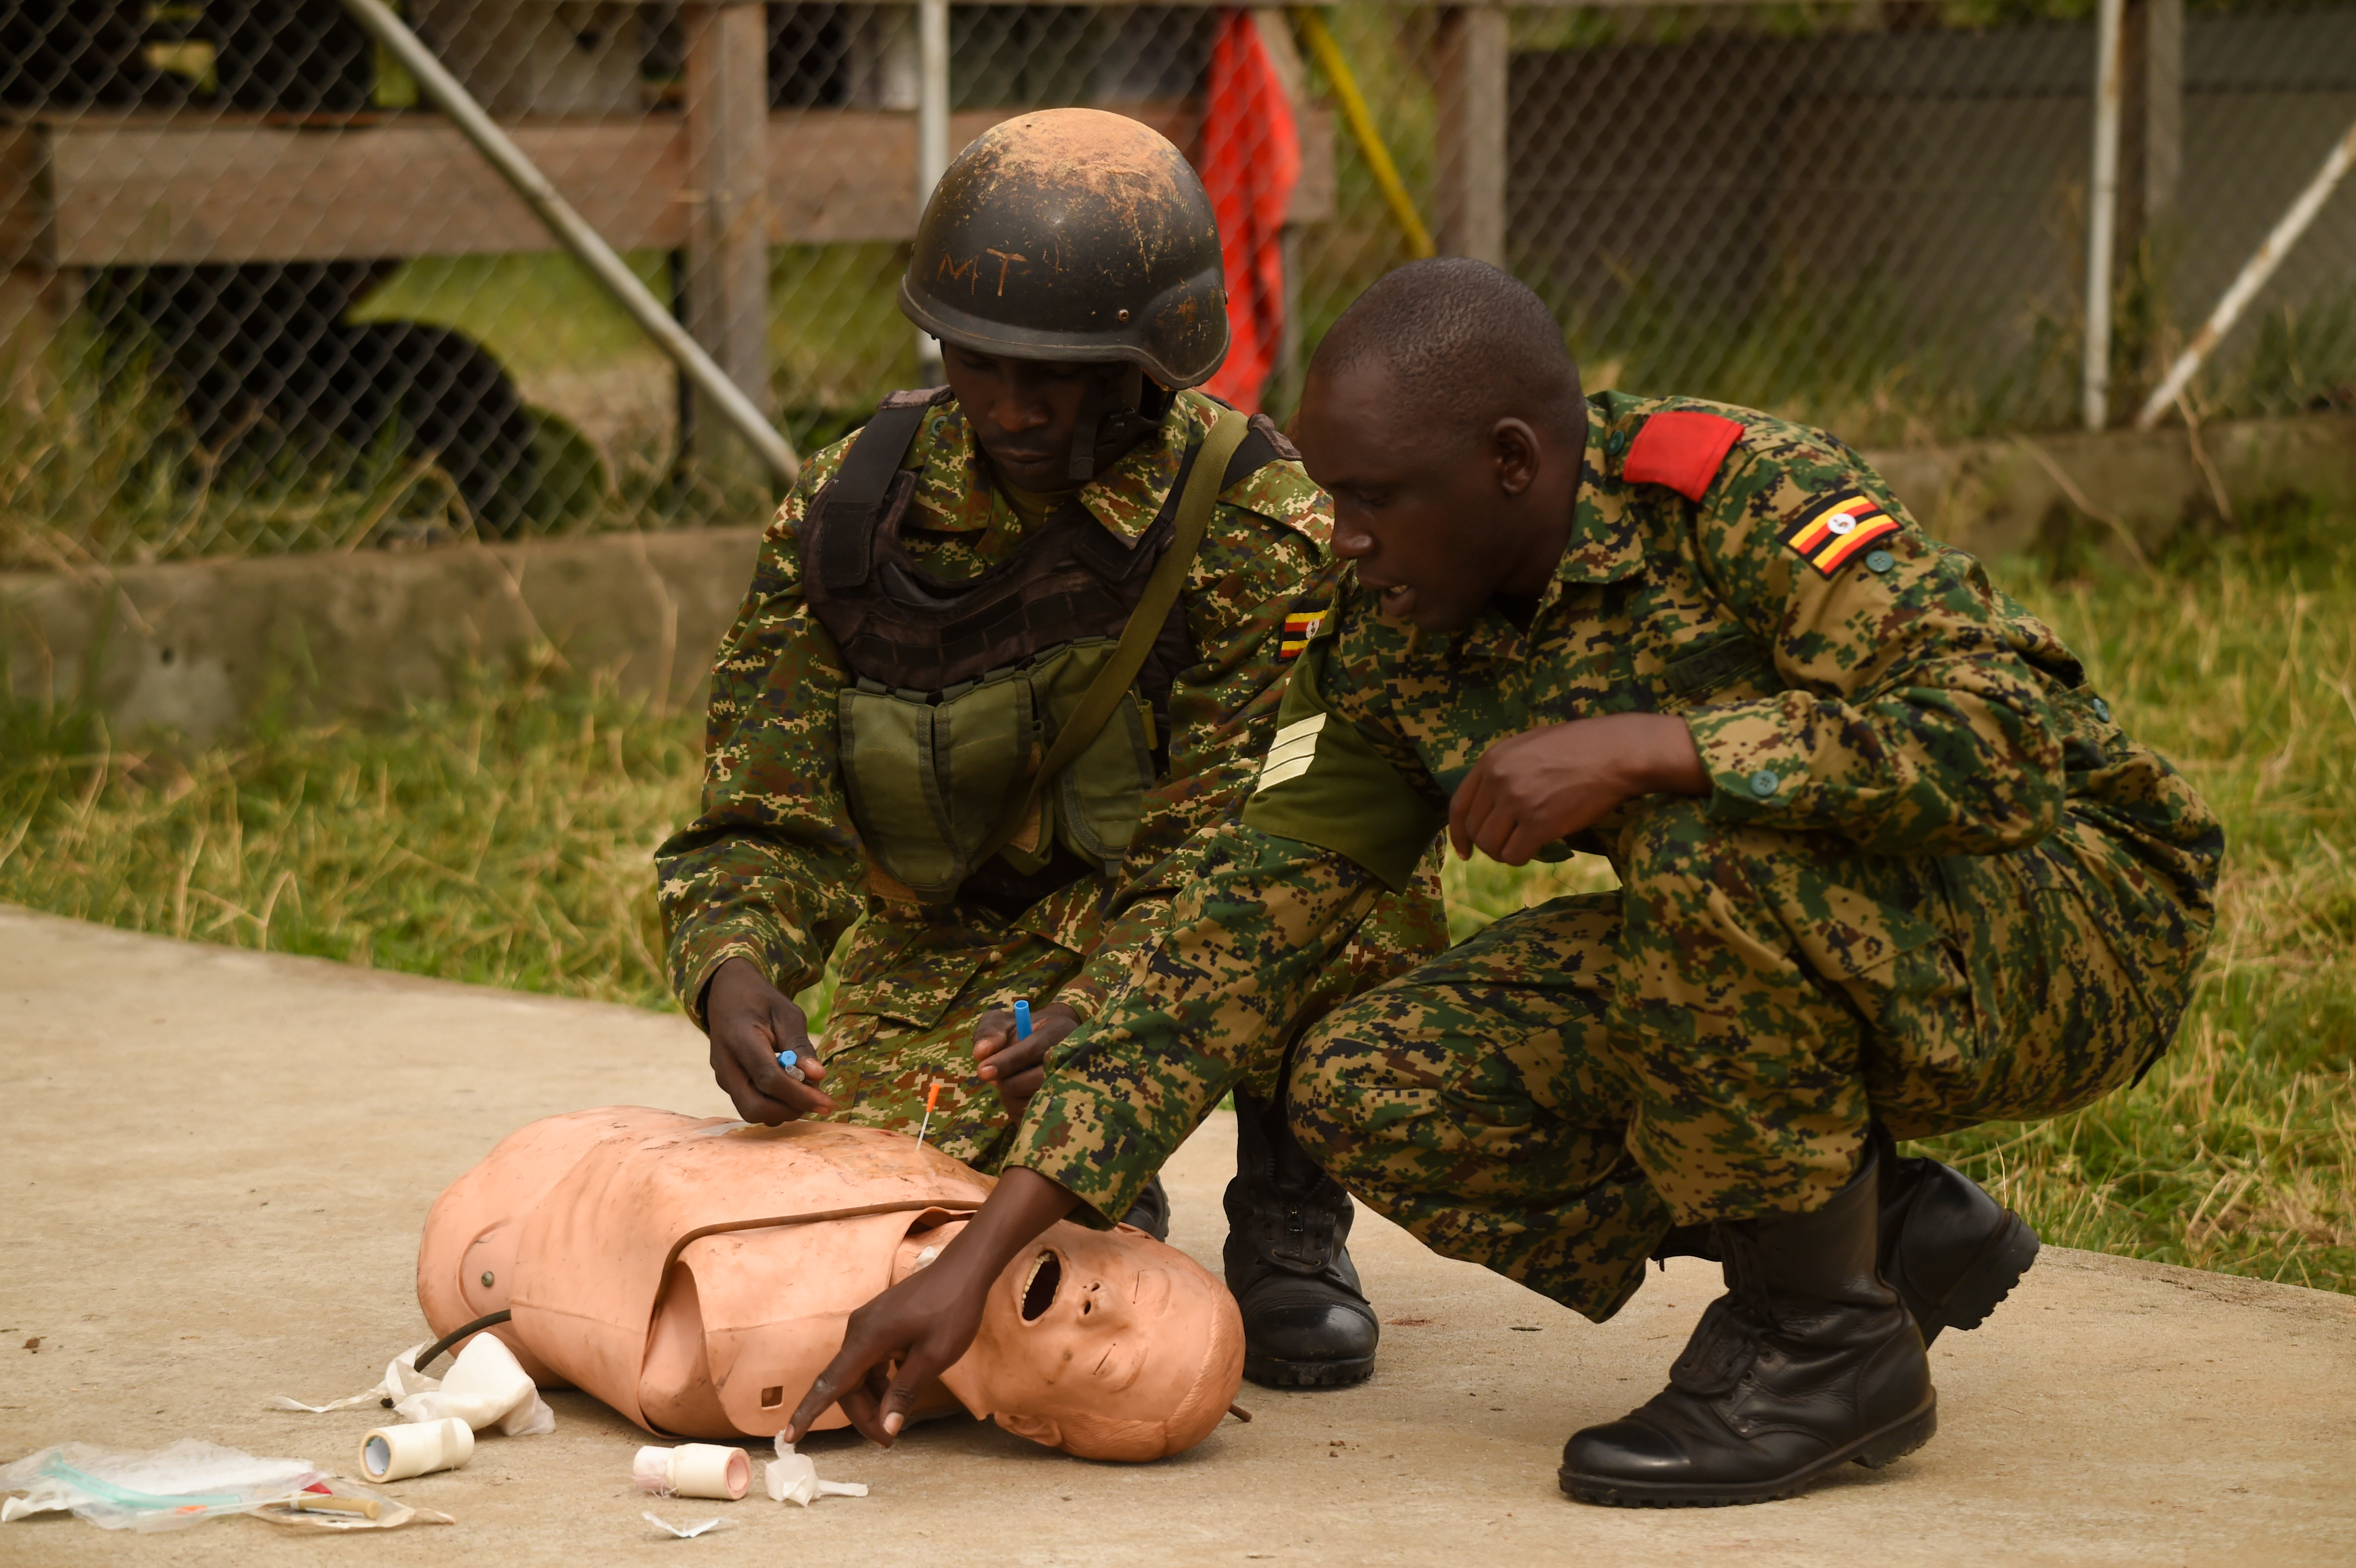 A Uganda People's Defense Force (UPDF) cadre member instructs a soldier on proper chest wound triage during a medical exercise at Camp Singo, March 3, 2017. UPDF soldiers assigned to Ugandan Battle Group 22 employed skills acquired from their predeployment training such as nine-line medical evacuation, combat lifesaving techniques and casualty extraction. (U.S. Air National Guard photo by Staff Sgt. Penny Snoozy)